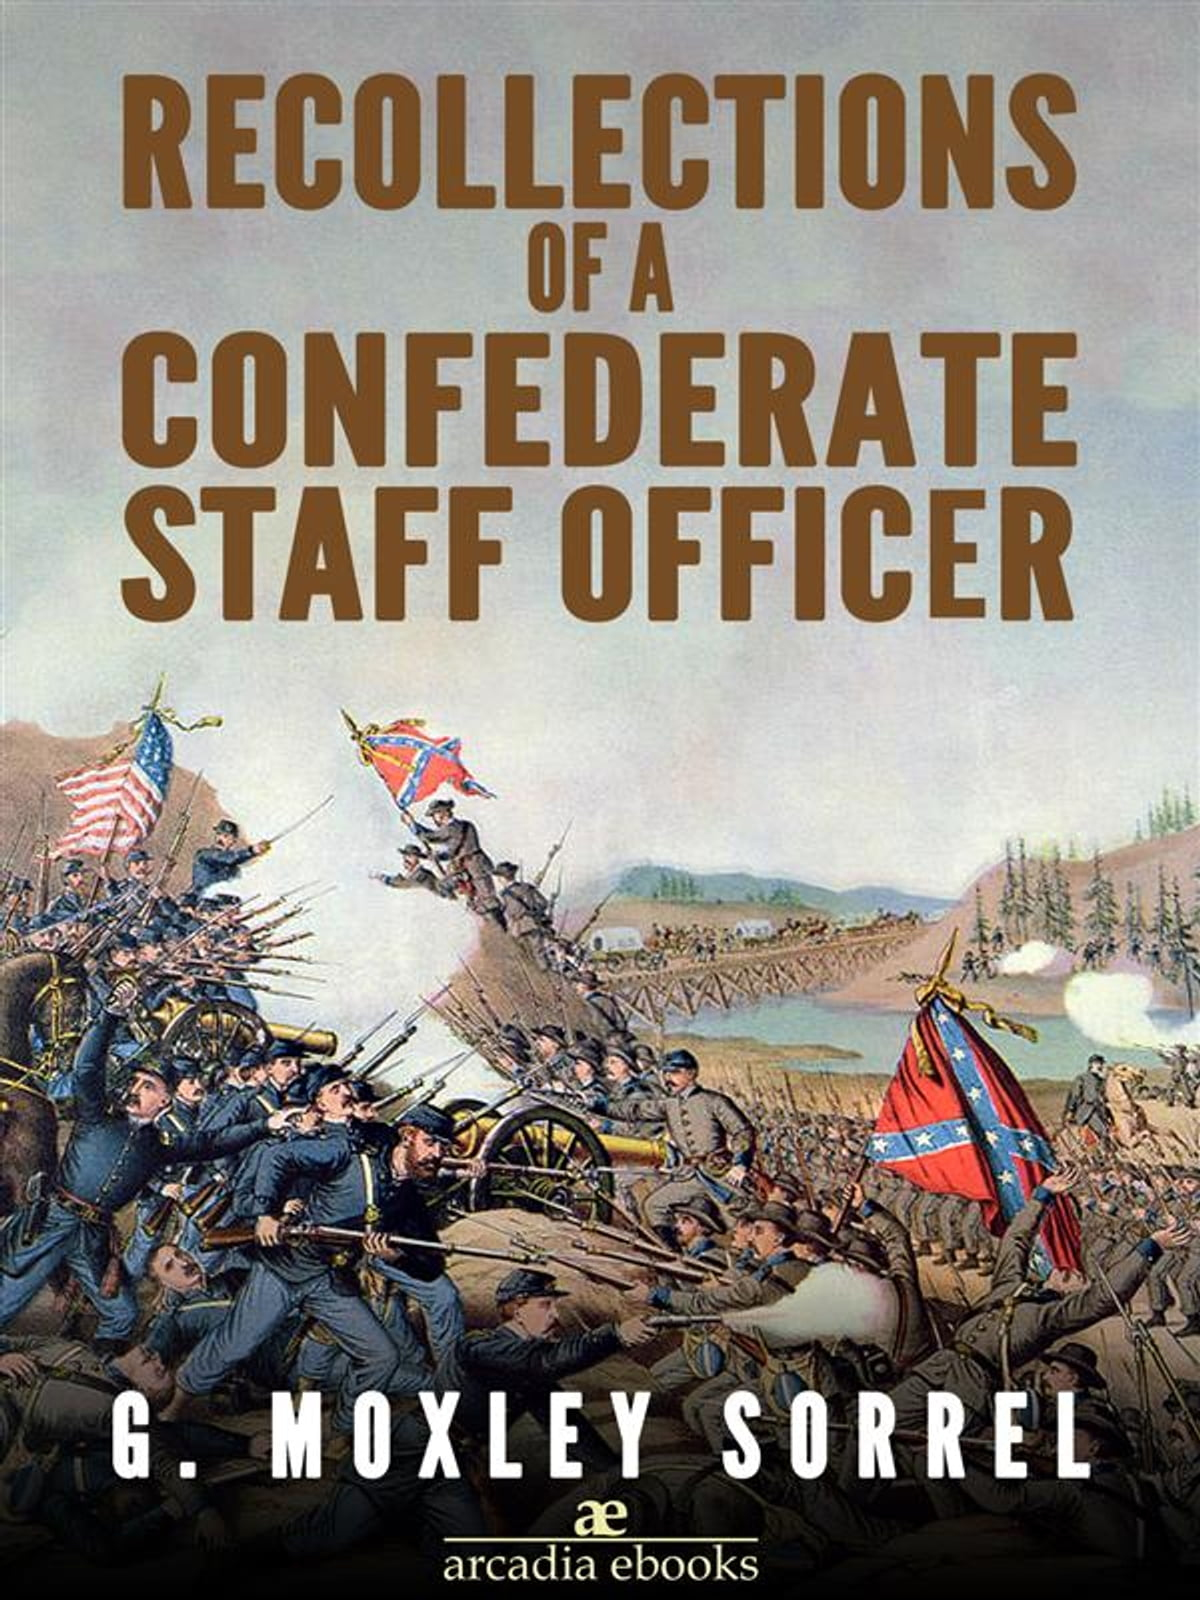 Recollections of a Confederate Staff Officer eBook by G. Moxley Sorrel -  9788822825698 | Rakuten Kobo